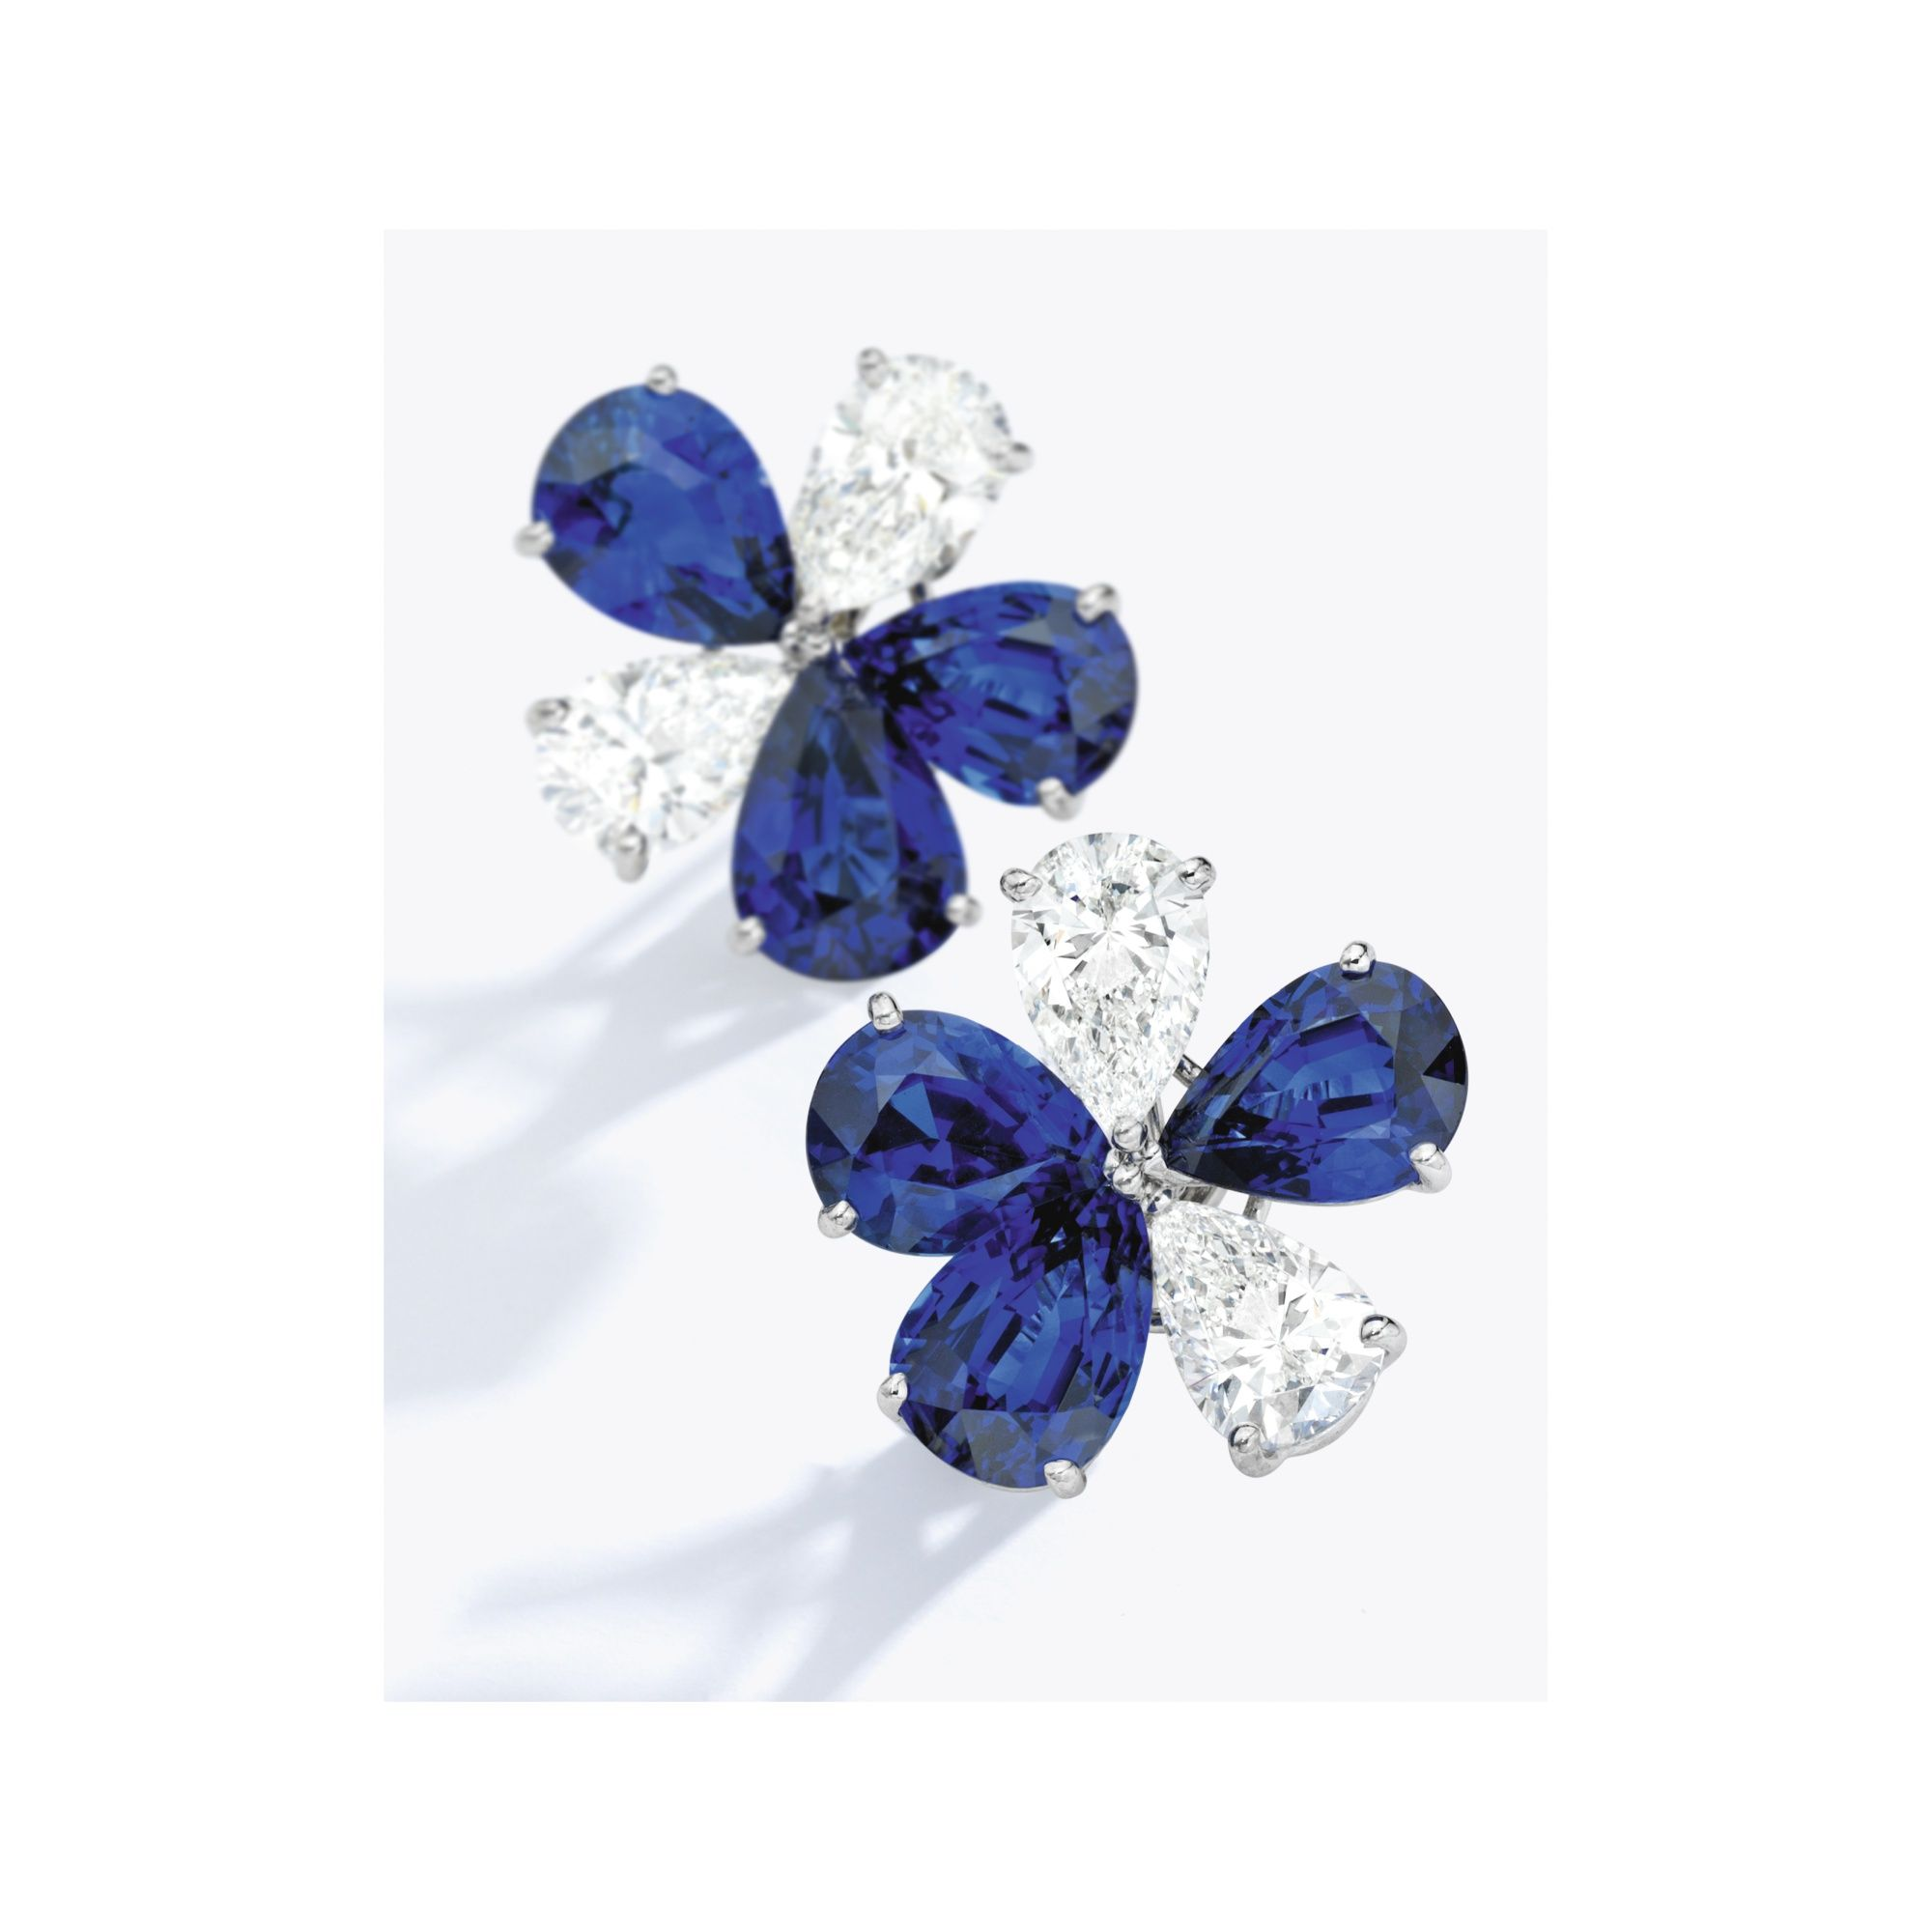 shop fine pear sapphire gems ct shape shaped featured image blue haruni